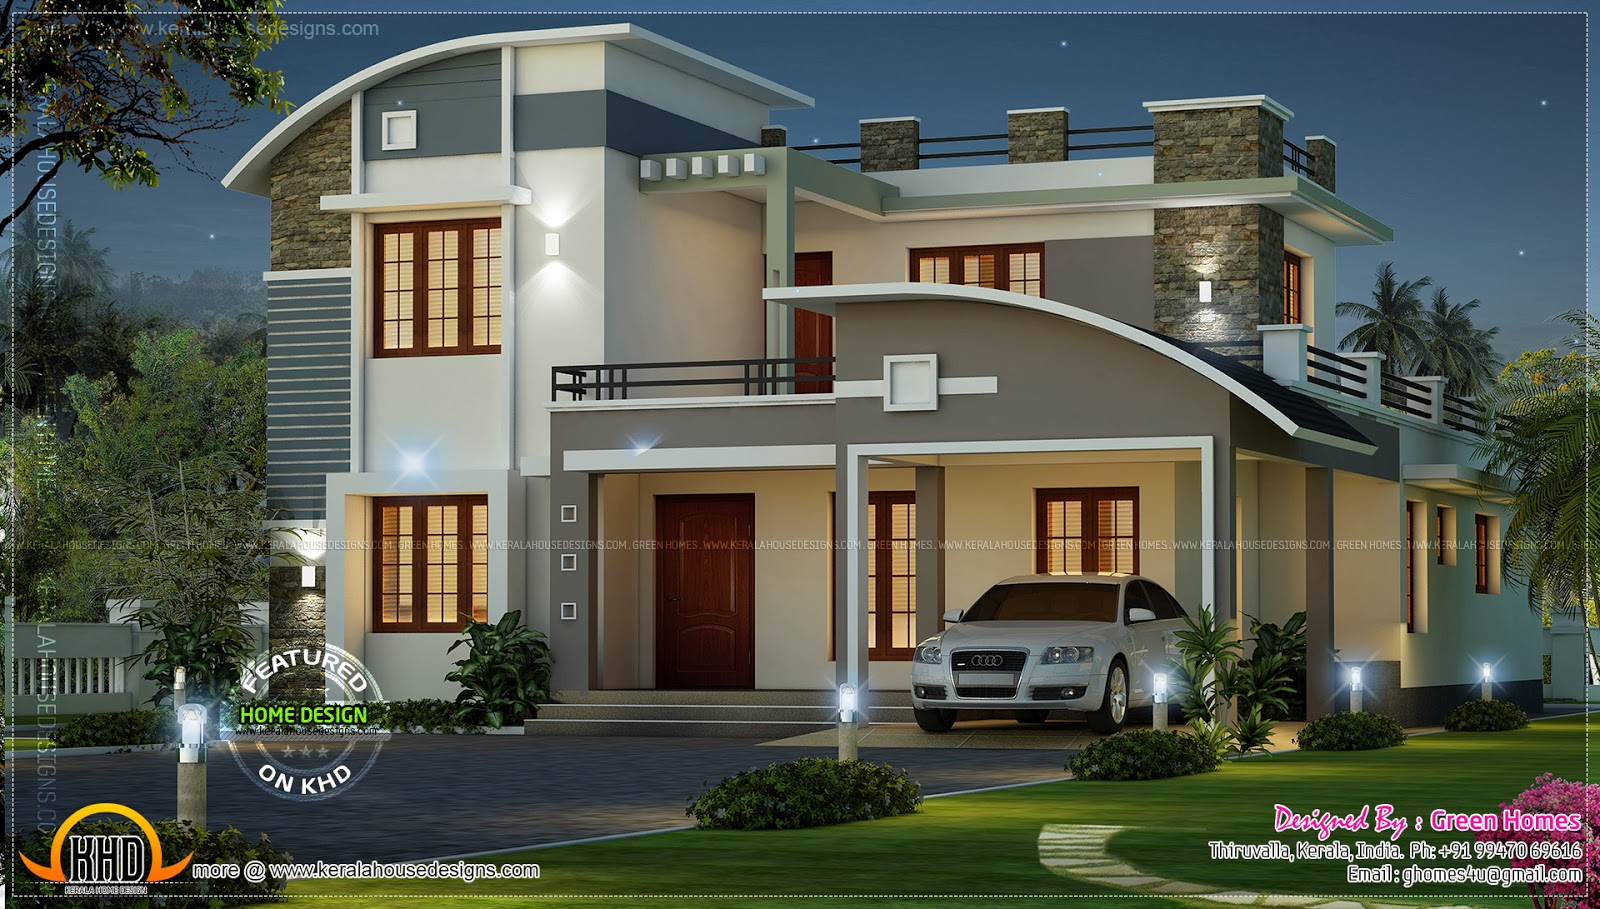 Modern beautiful home kerala home design and floor plans for Blue print homes